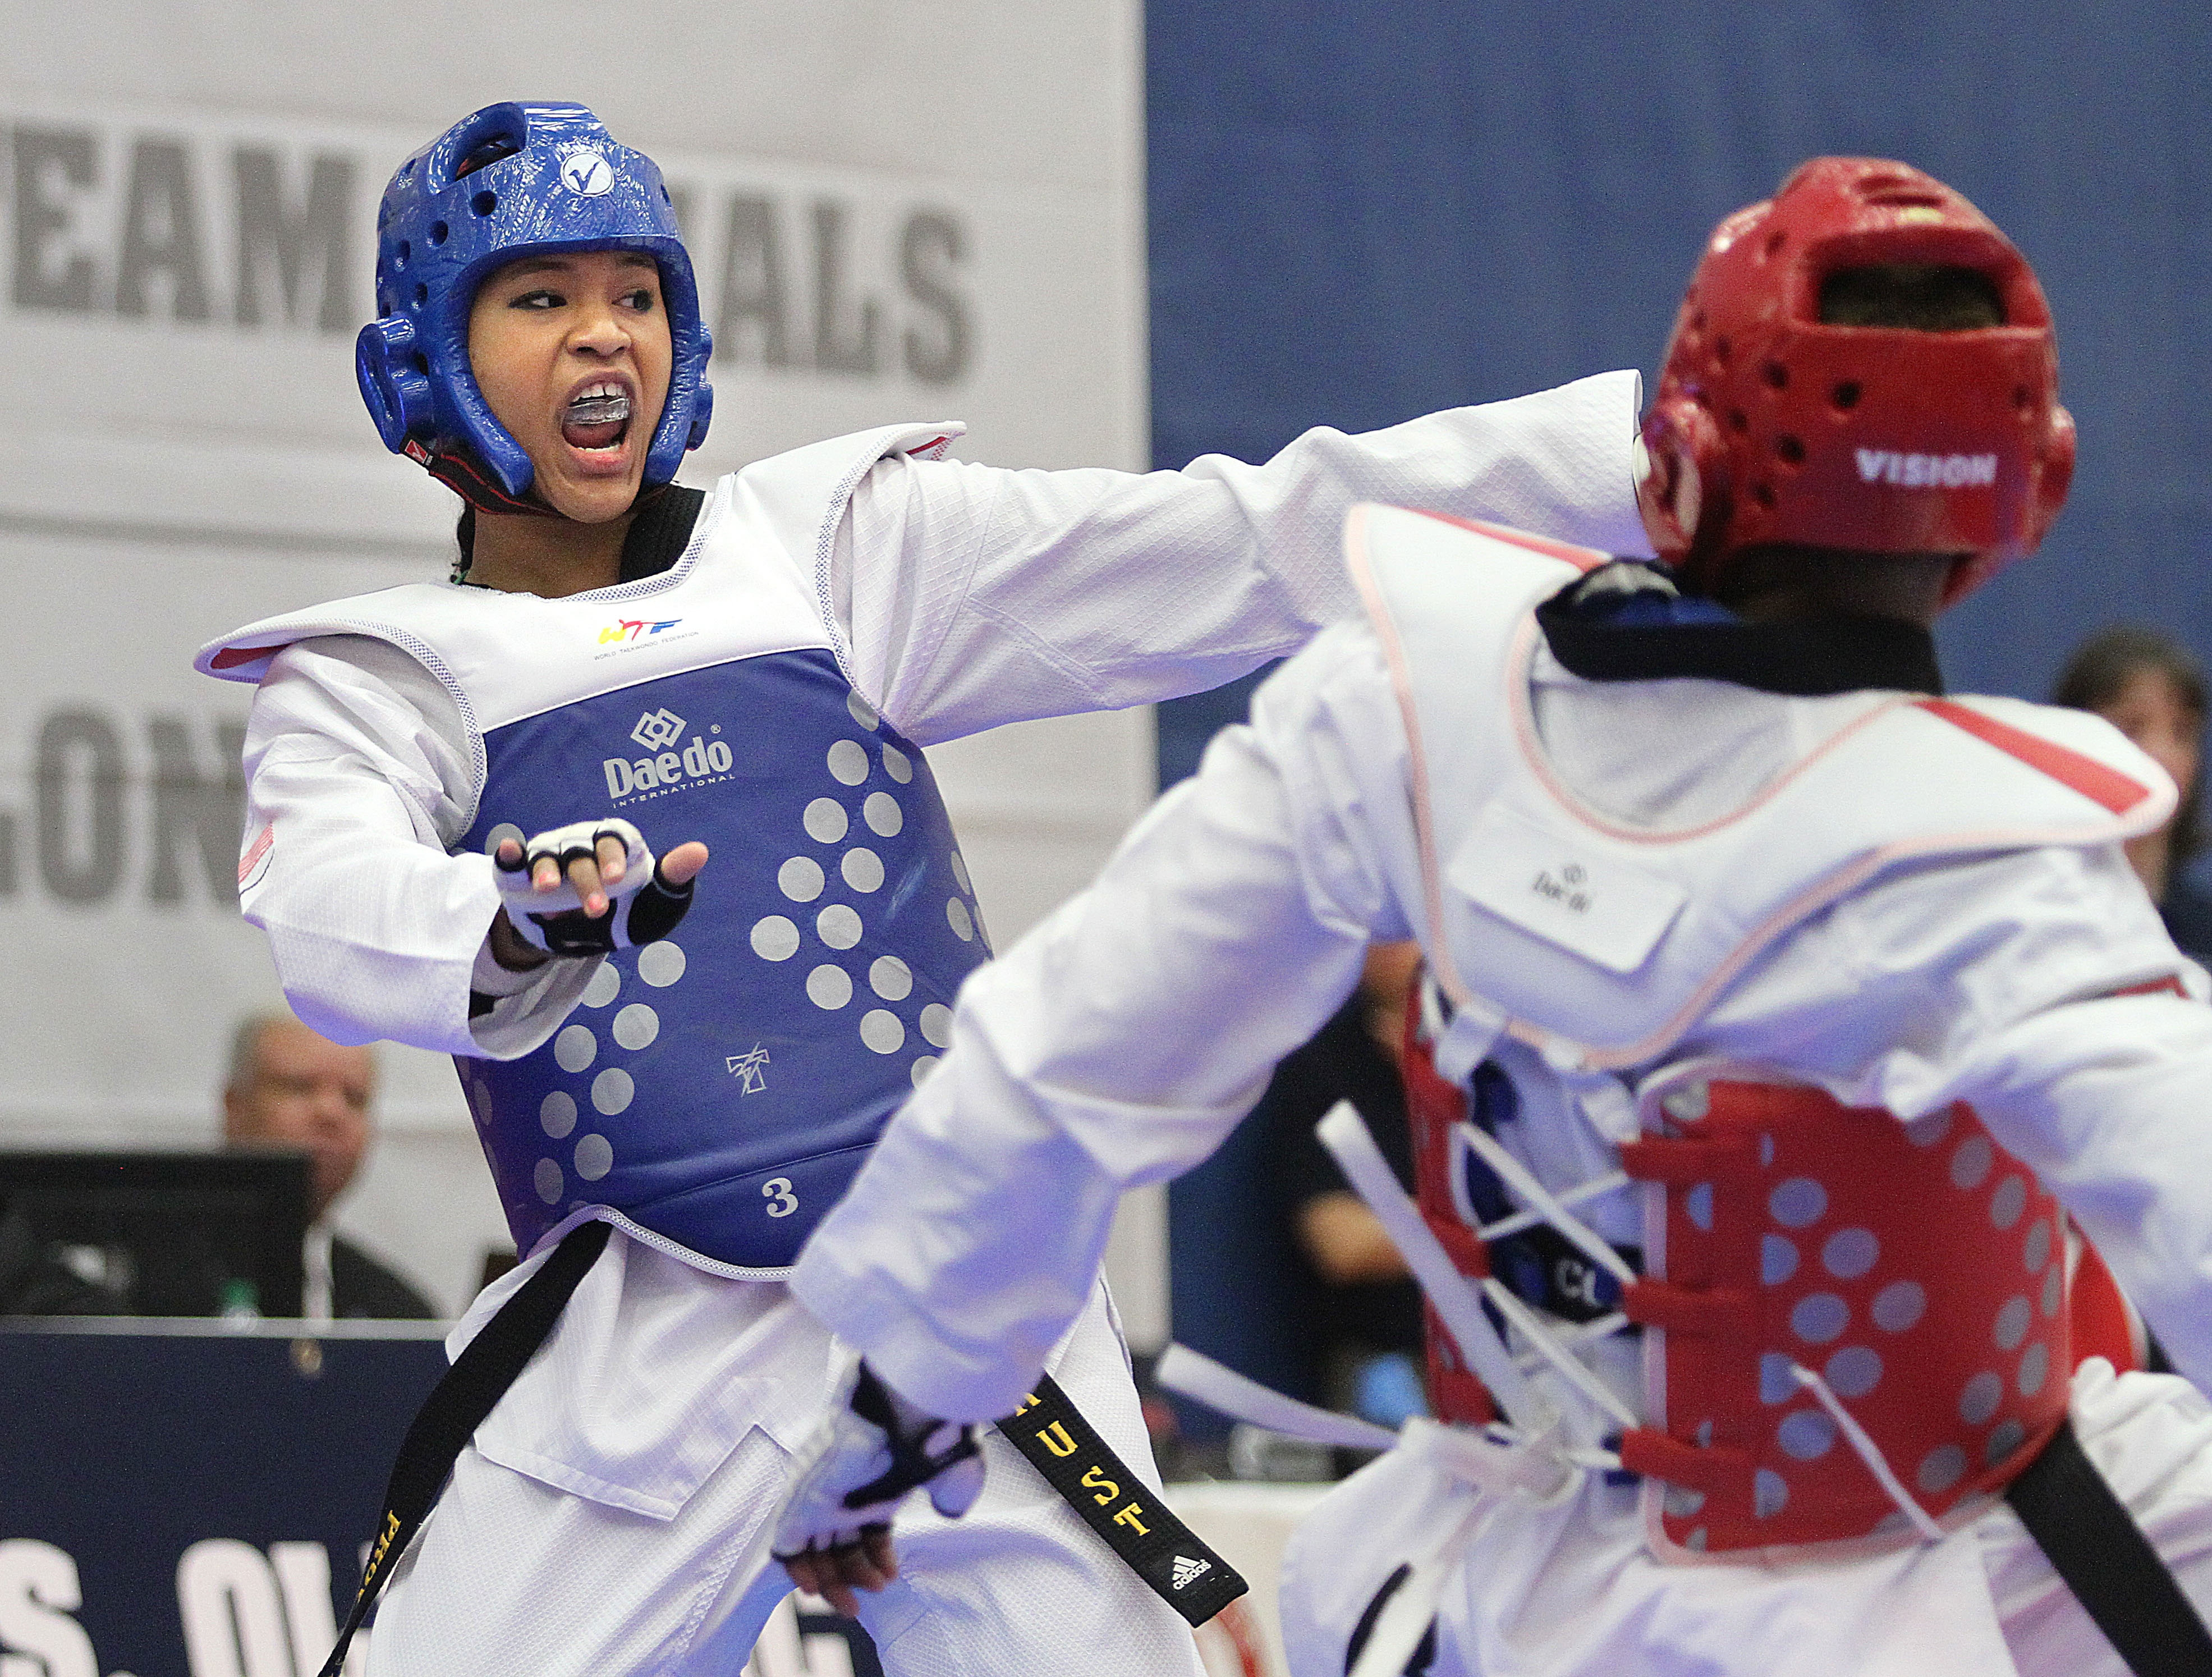 Paige McPherson, in blue, goes after Nia Abdallah during the 2012 Taekwondo Olympic Trials at the U.S. Olympic Training Center in Colorado Springs, Colo. McPherson won the match 5-4.